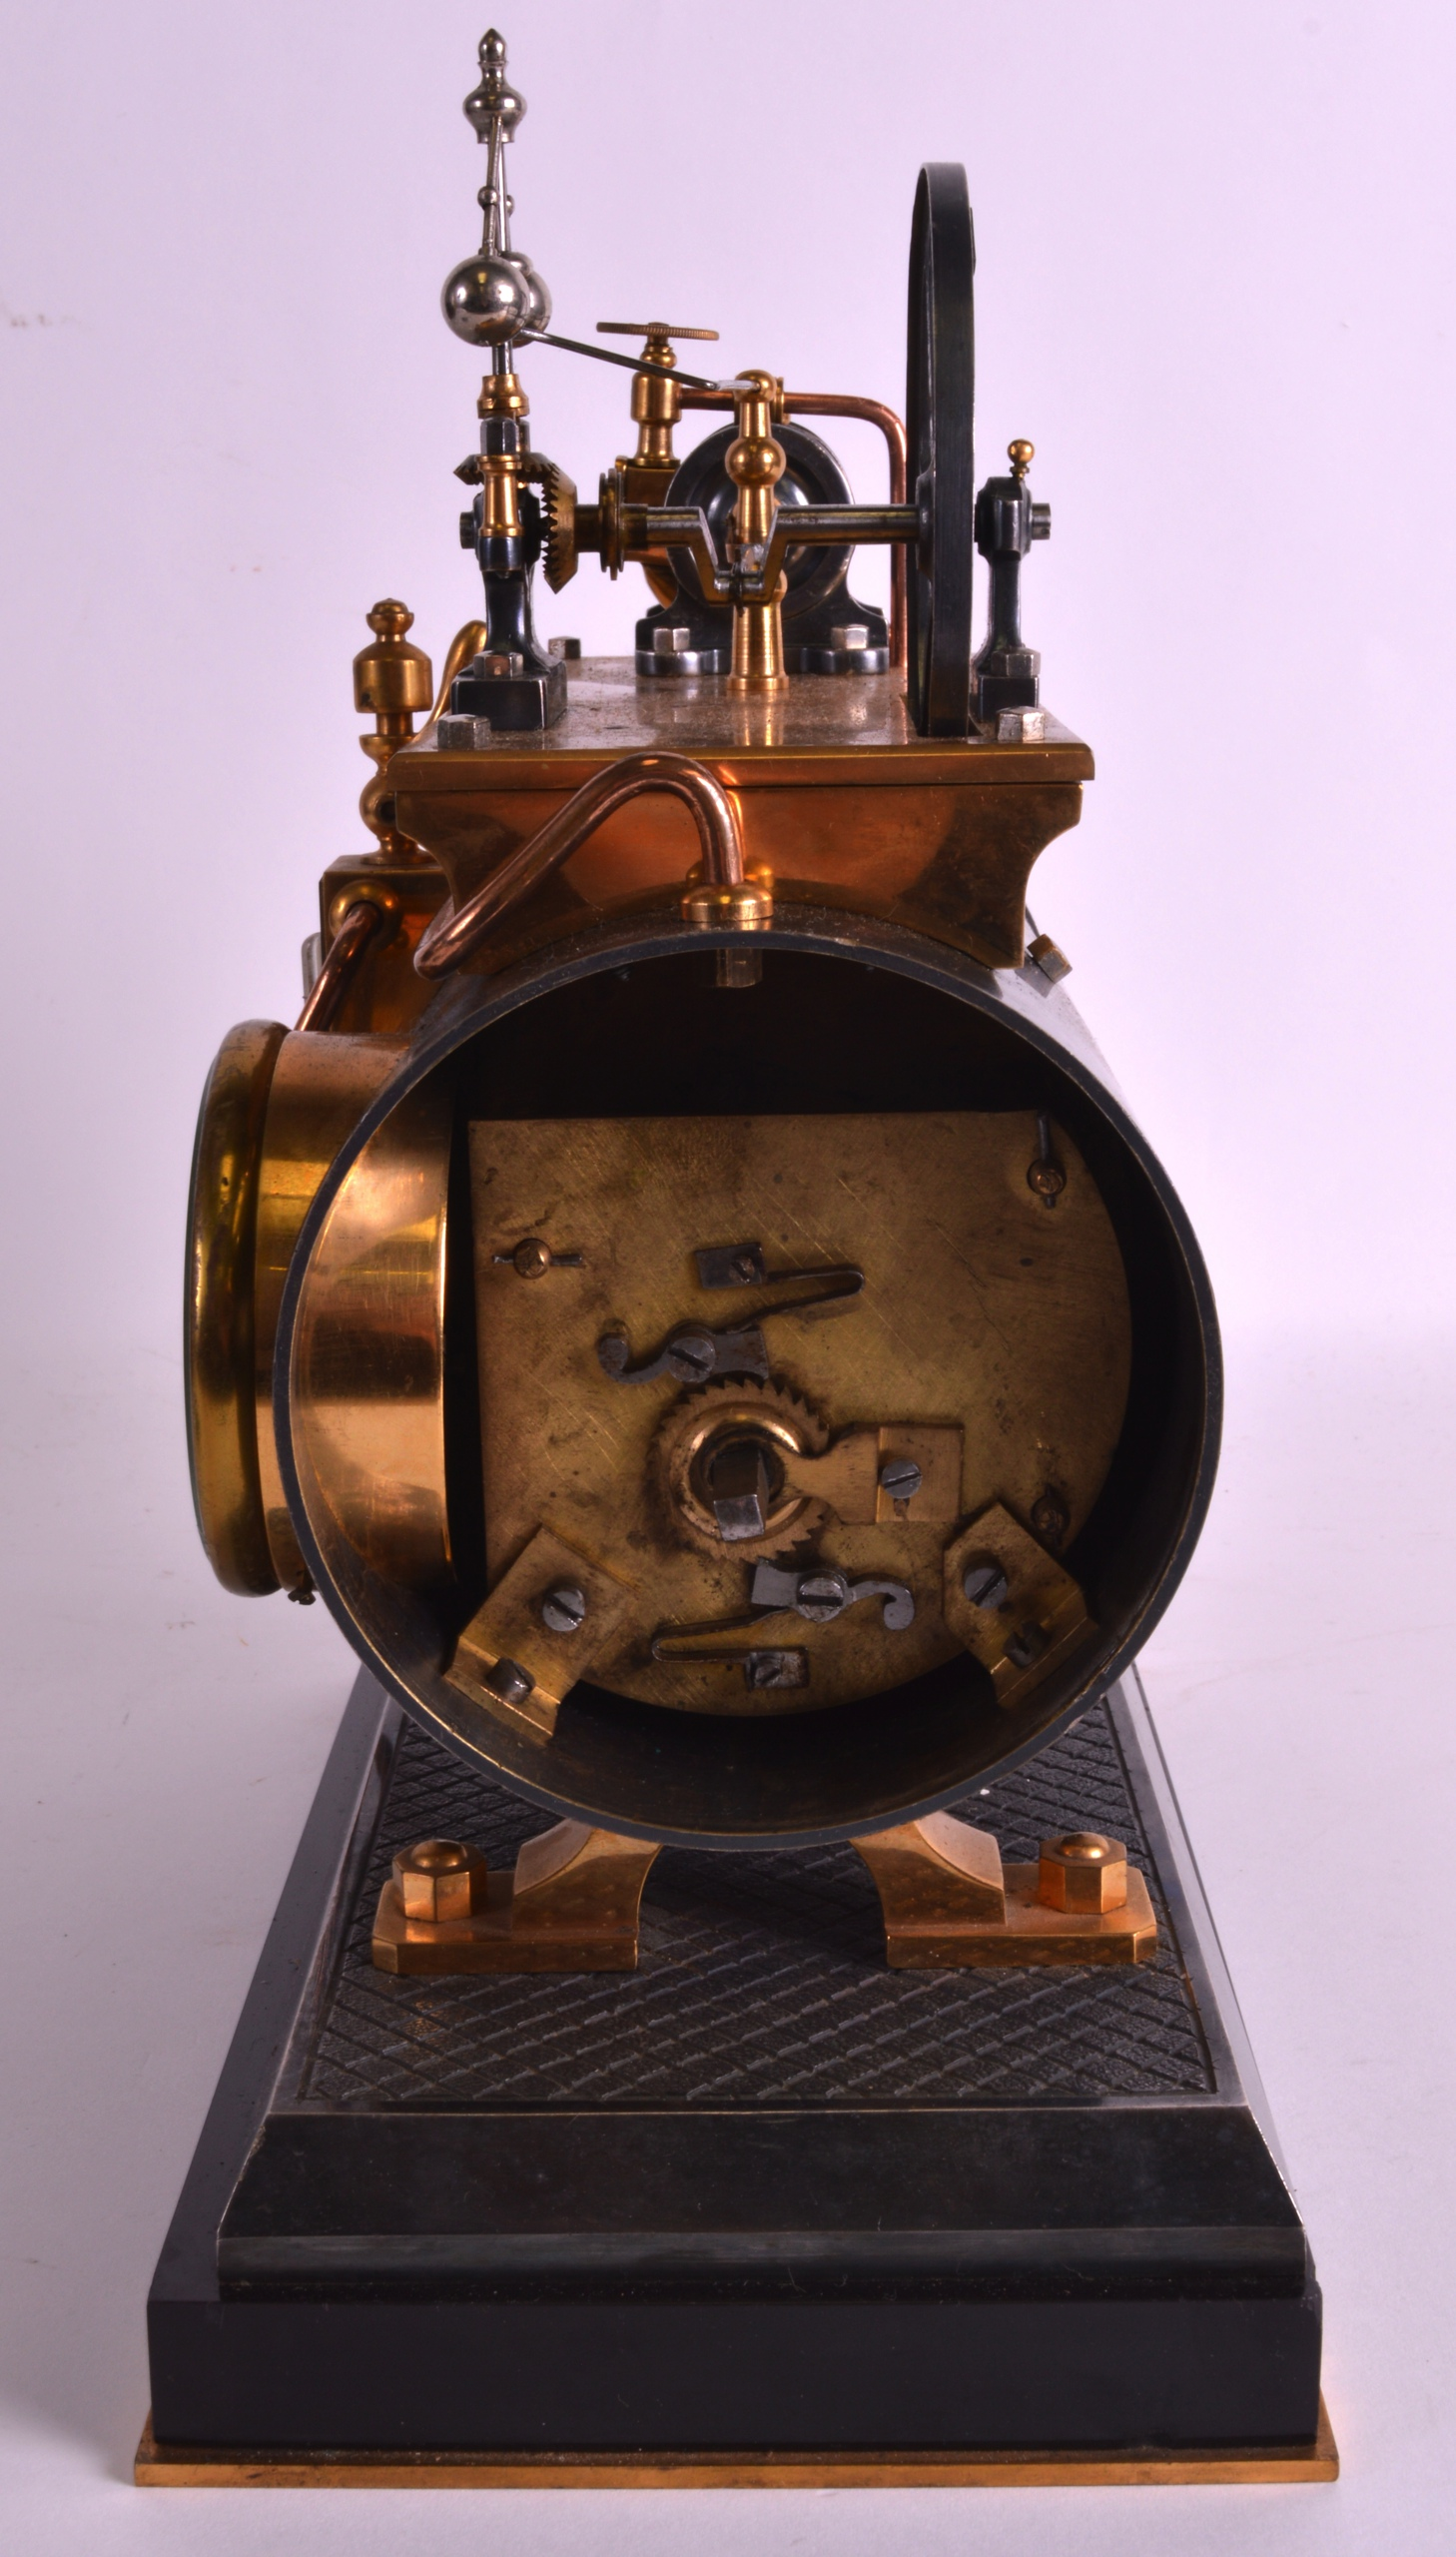 A FINE 19TH CENTURY FRENCH INDUSTRIAL BOILER ENGINE CLOCK C1880 with Roman chapters and blued - Image 6 of 7